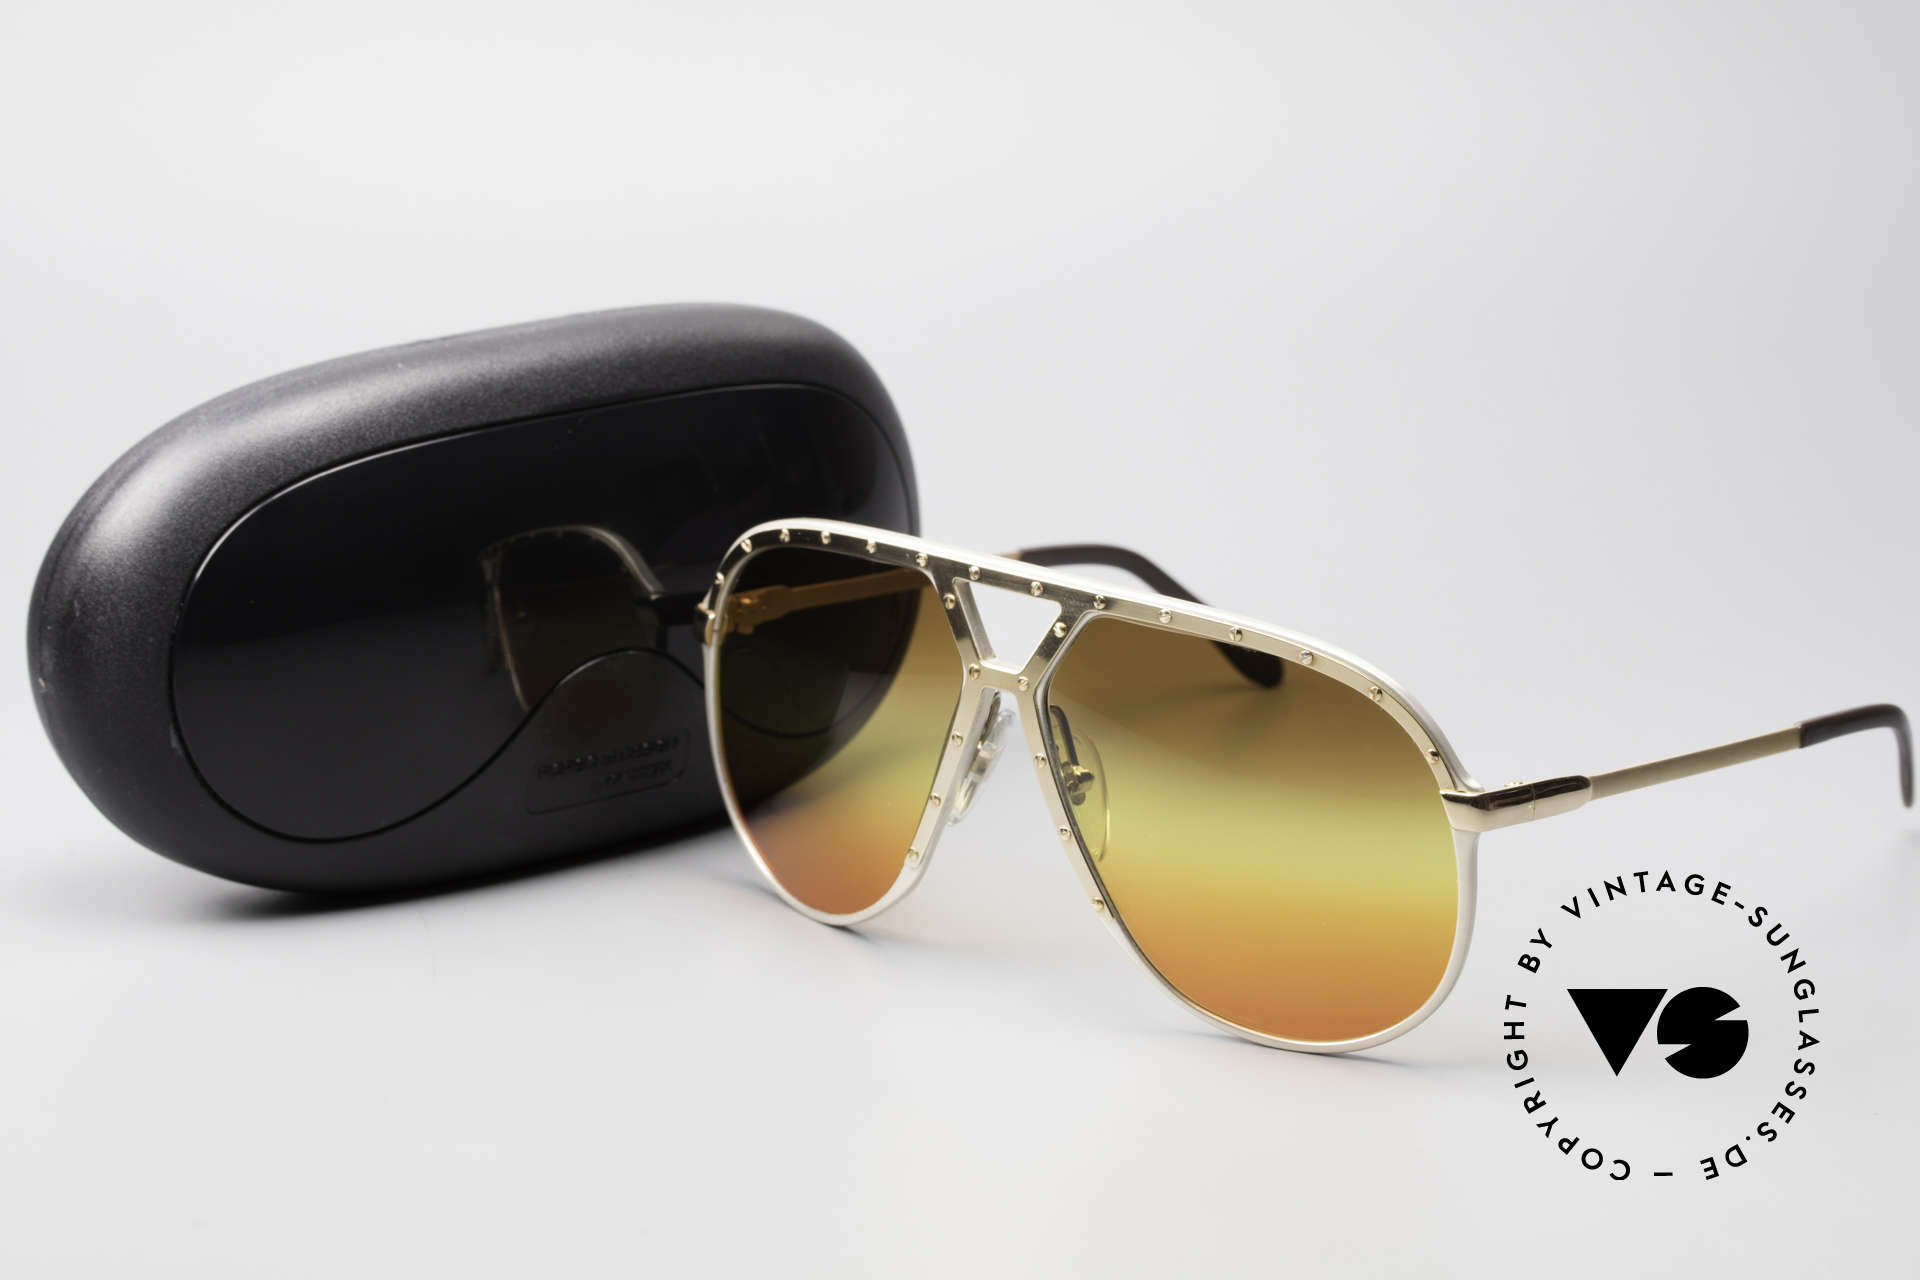 Alpina M1 80's Sunglasses West Germany, Size: large, Made for Men